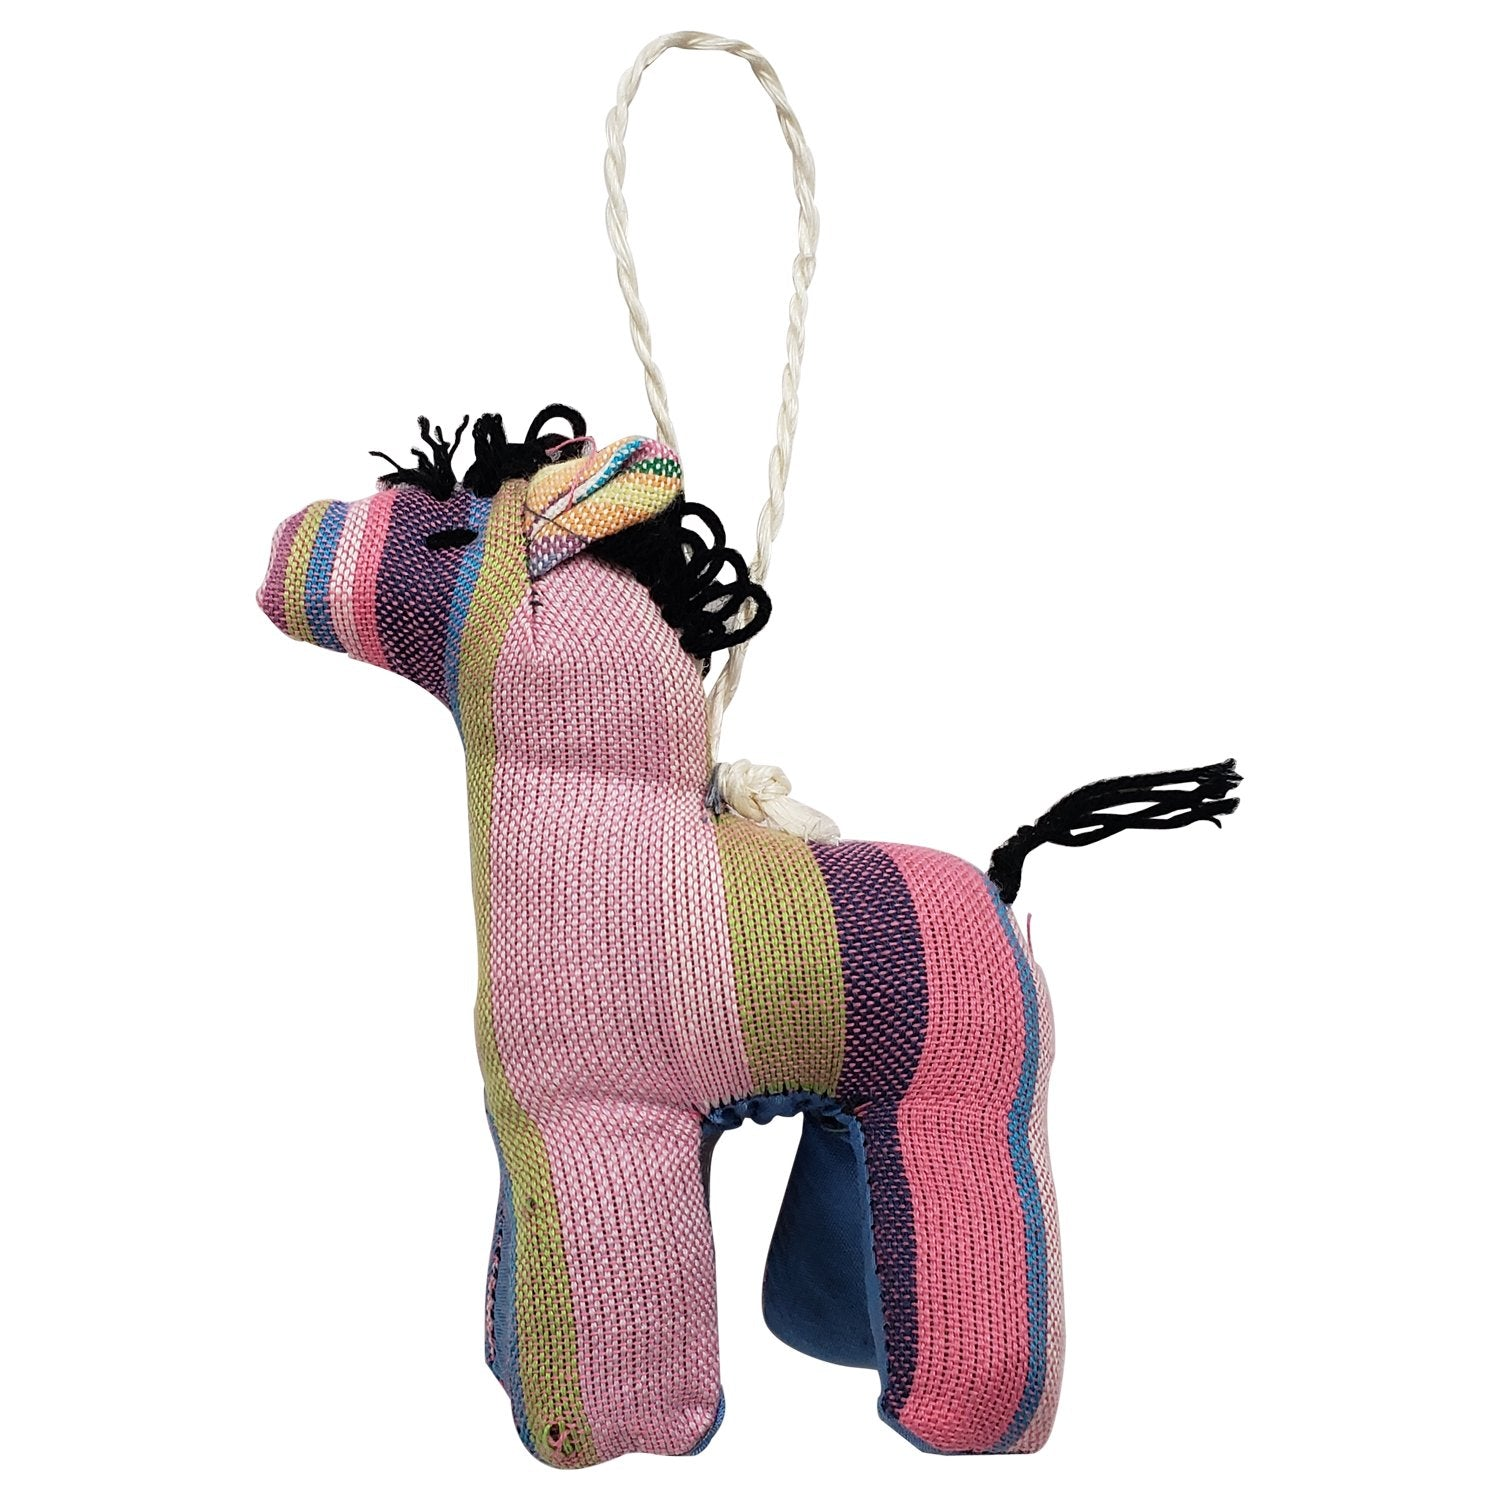 Zebra: Authentic African Handmade Kikoi Fabric Stuffed Animal Christmas Ornament